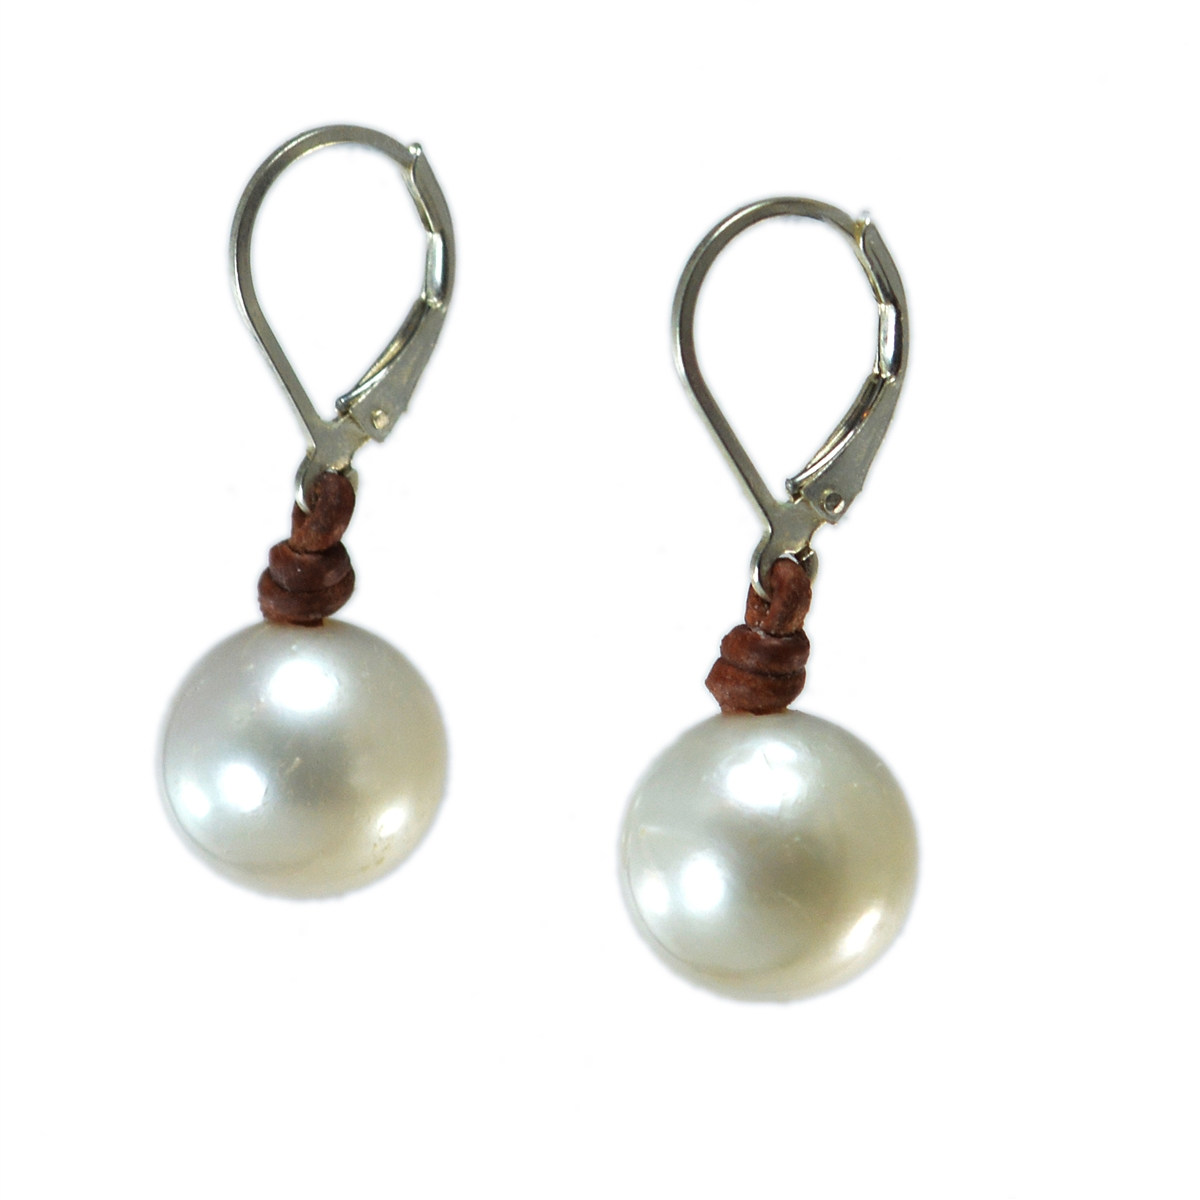 mignot earrings by i single htm and jewelry wendy leather designer fine gold south sea p pearls pearl